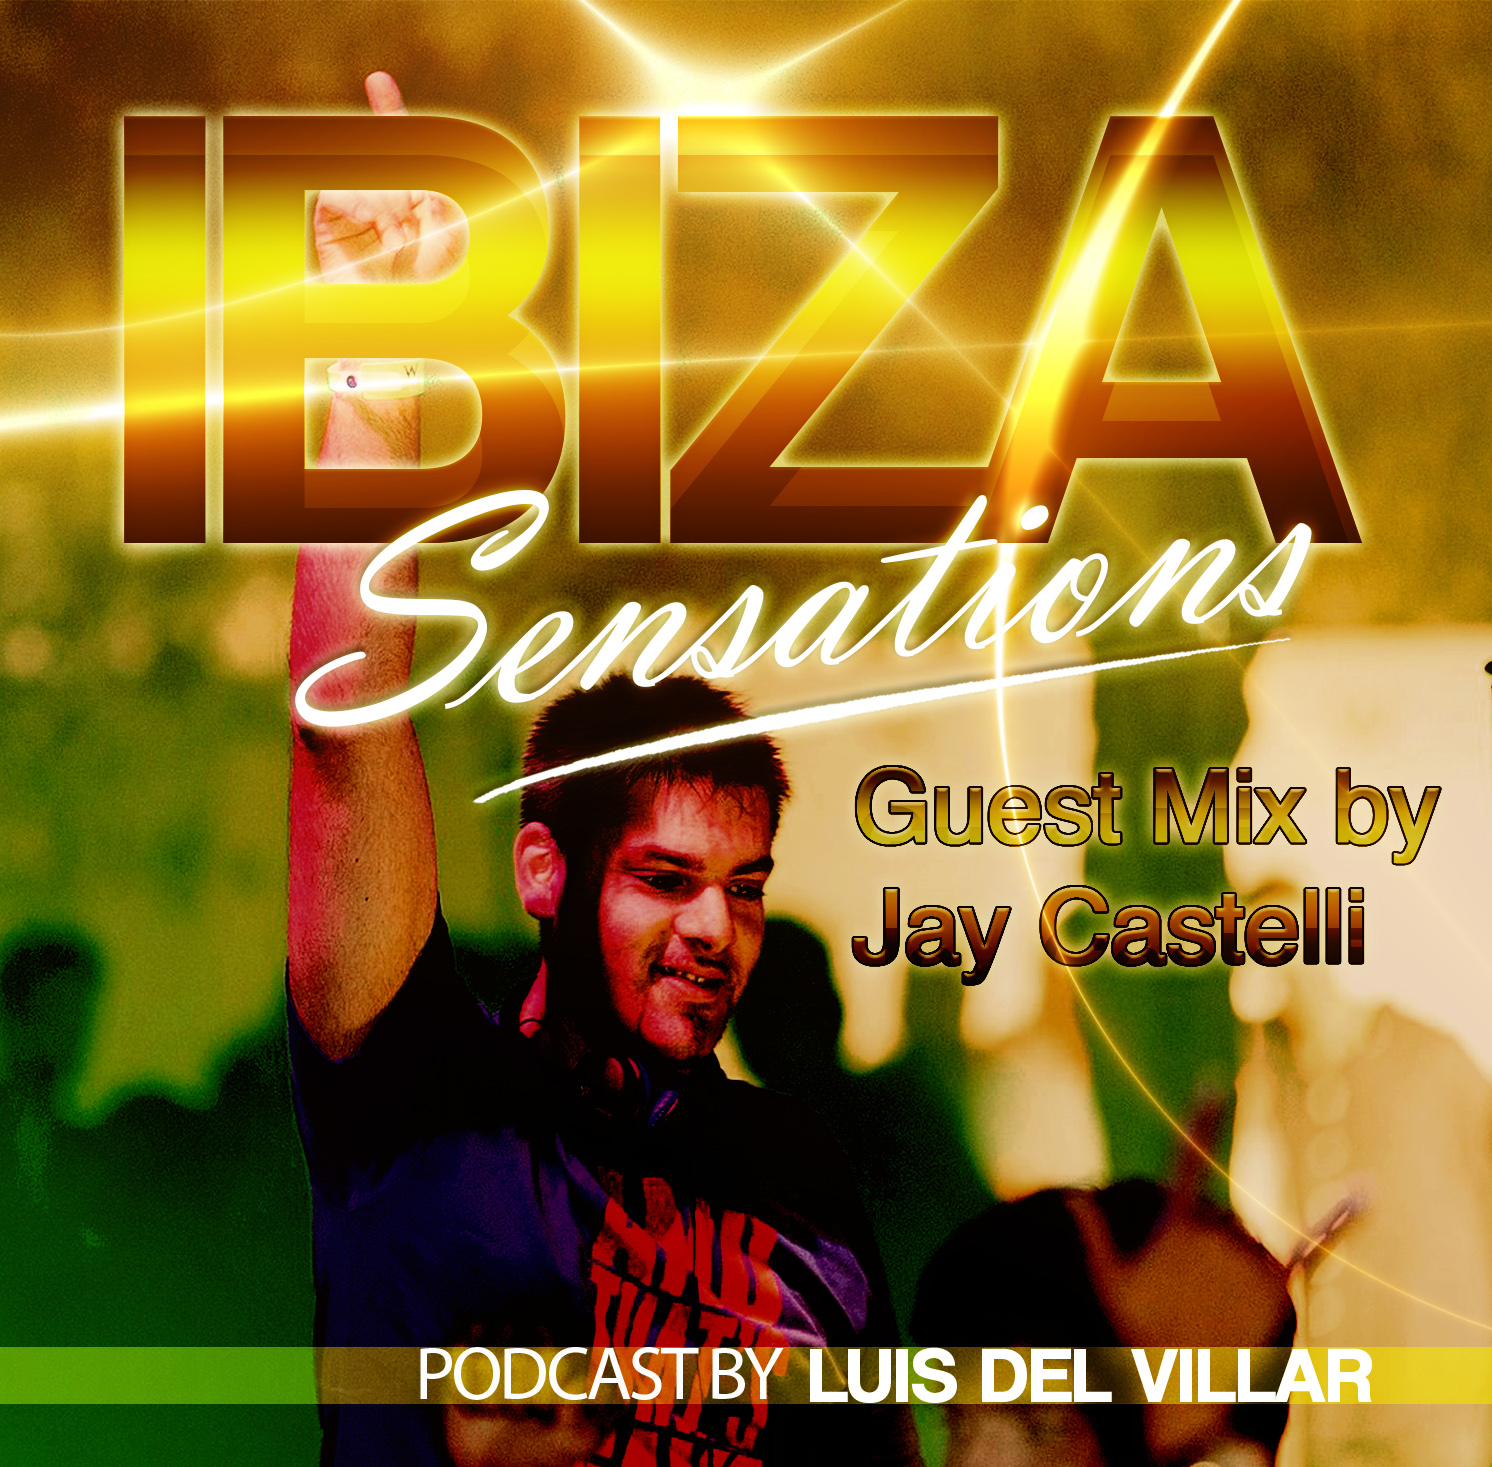 Artwork for Ibiza Sensations 85 Guest mix by Jay Castelli